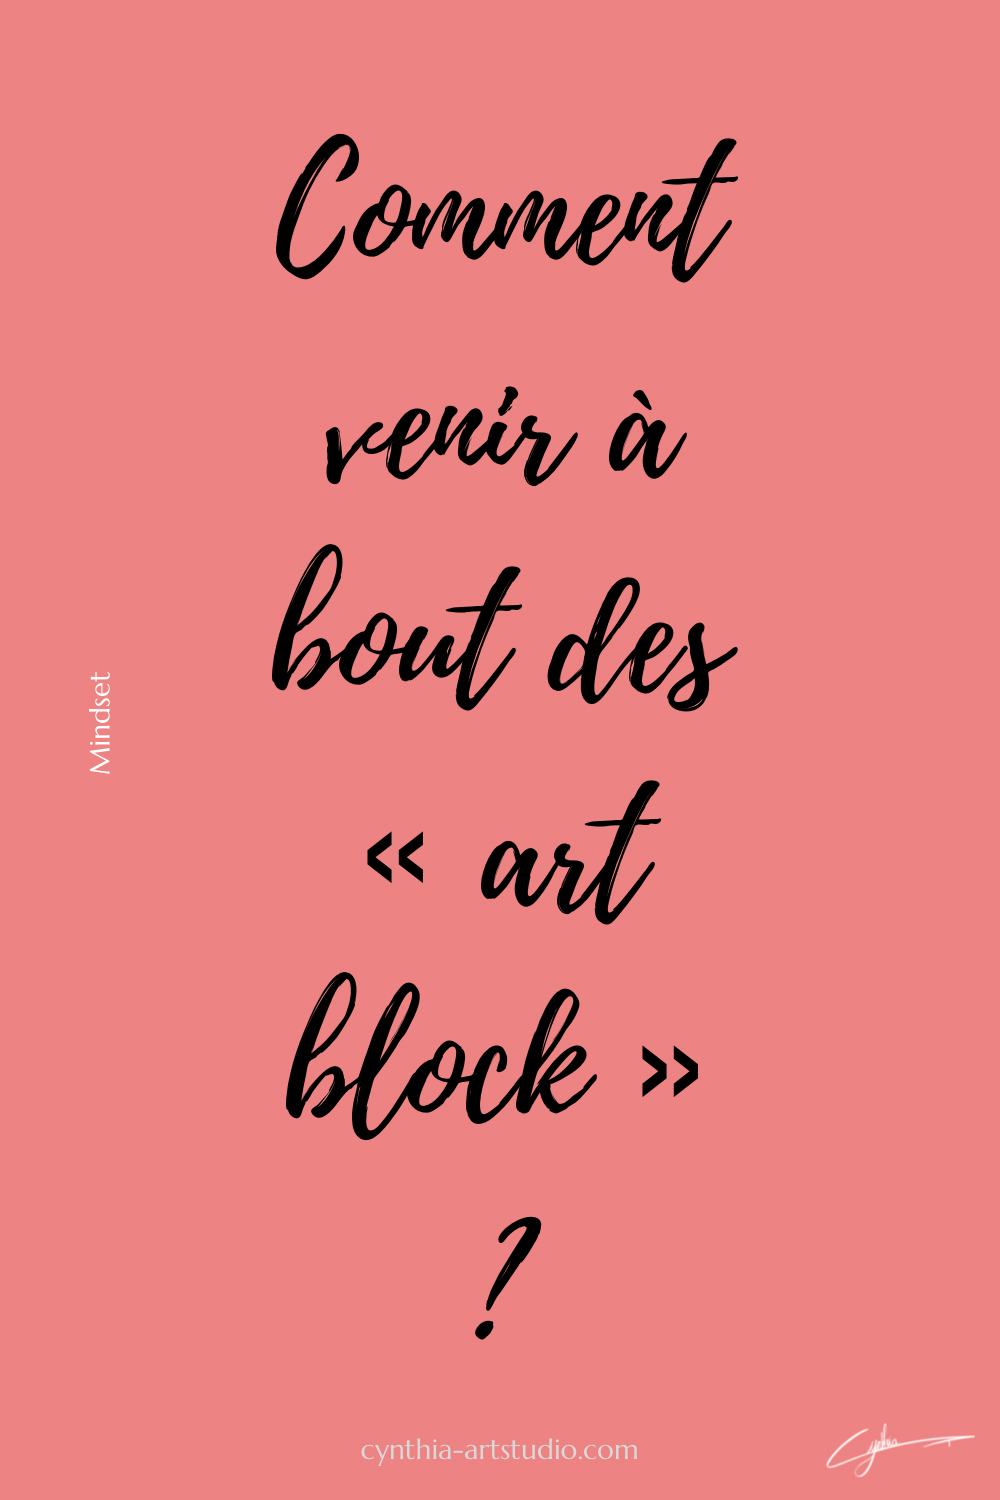 Article : Comment venir à bout des « art block » ? écrit par Cynthia Artstudio